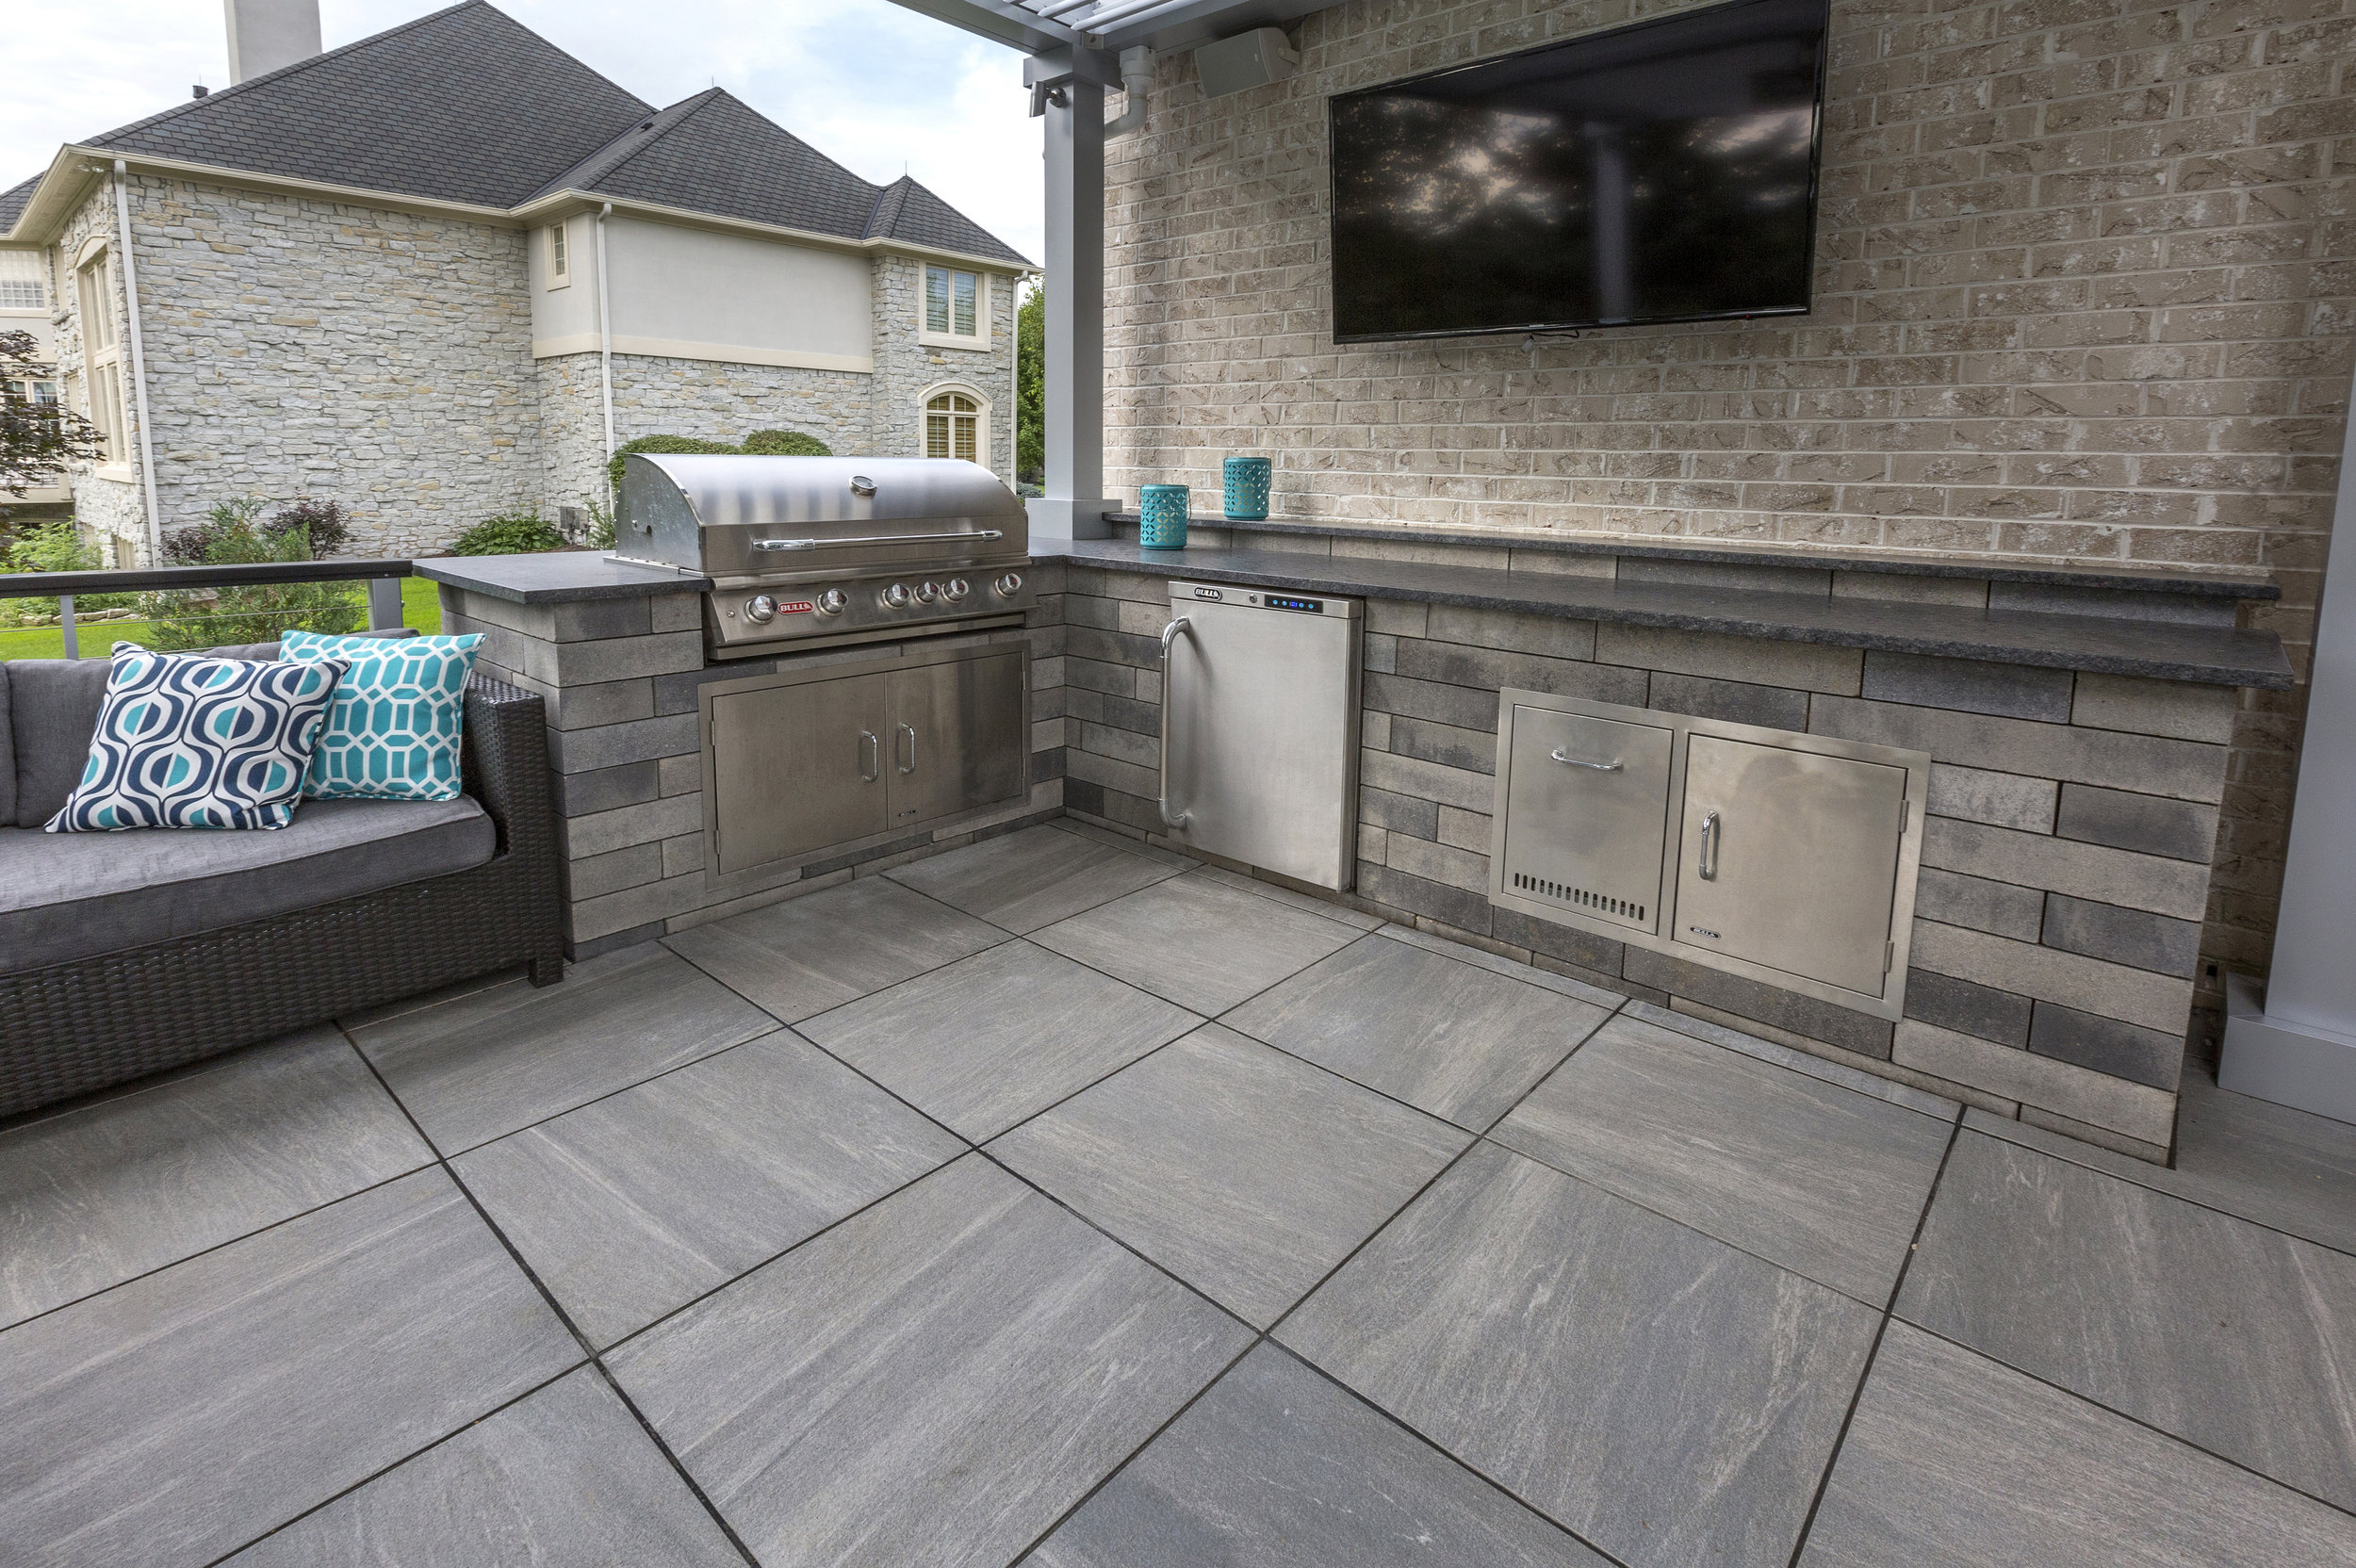 Enhance Your Patio Design with Porcelain Tiles from Our Stone Supply in Harrisburg, PA